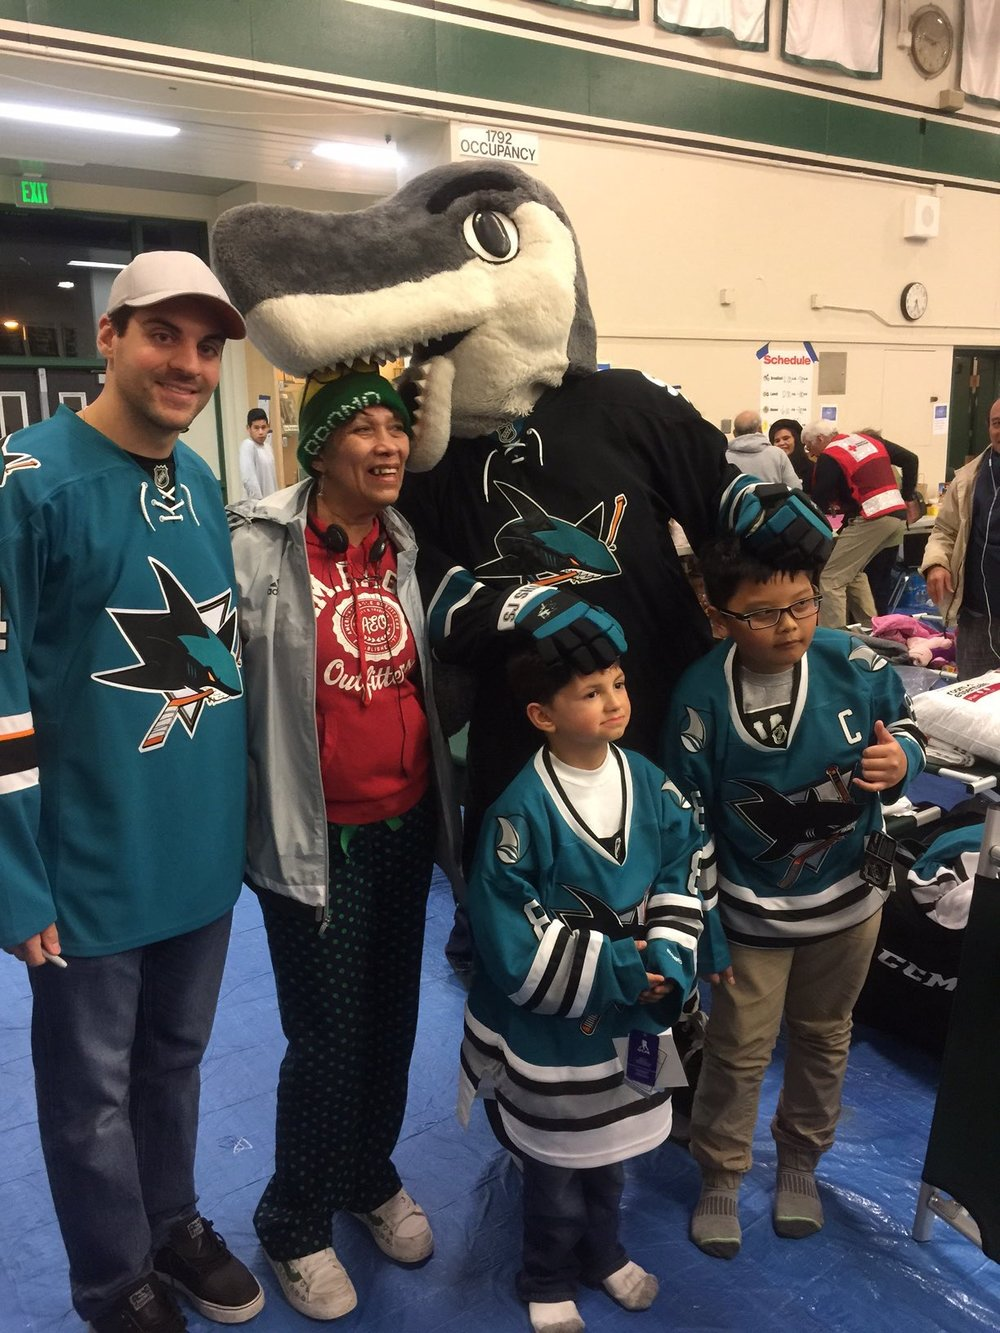 Image courtesy of San Jose Sharks  twitter